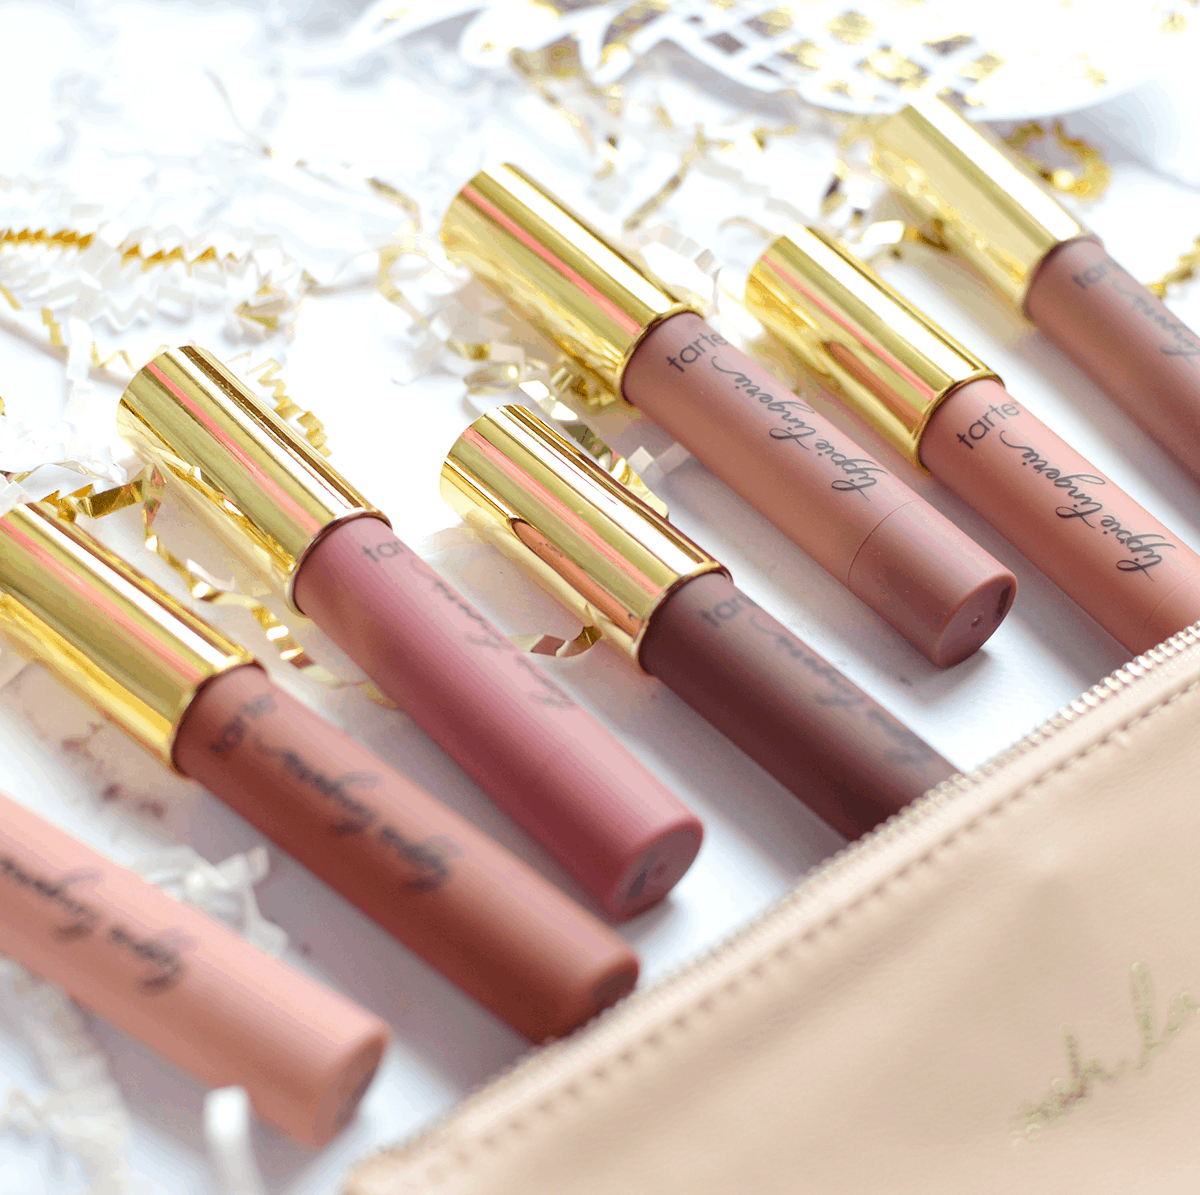 Tarte Lippie Lingerie Matte Lip Tints (review & swatches) | oliveandivyblog.com